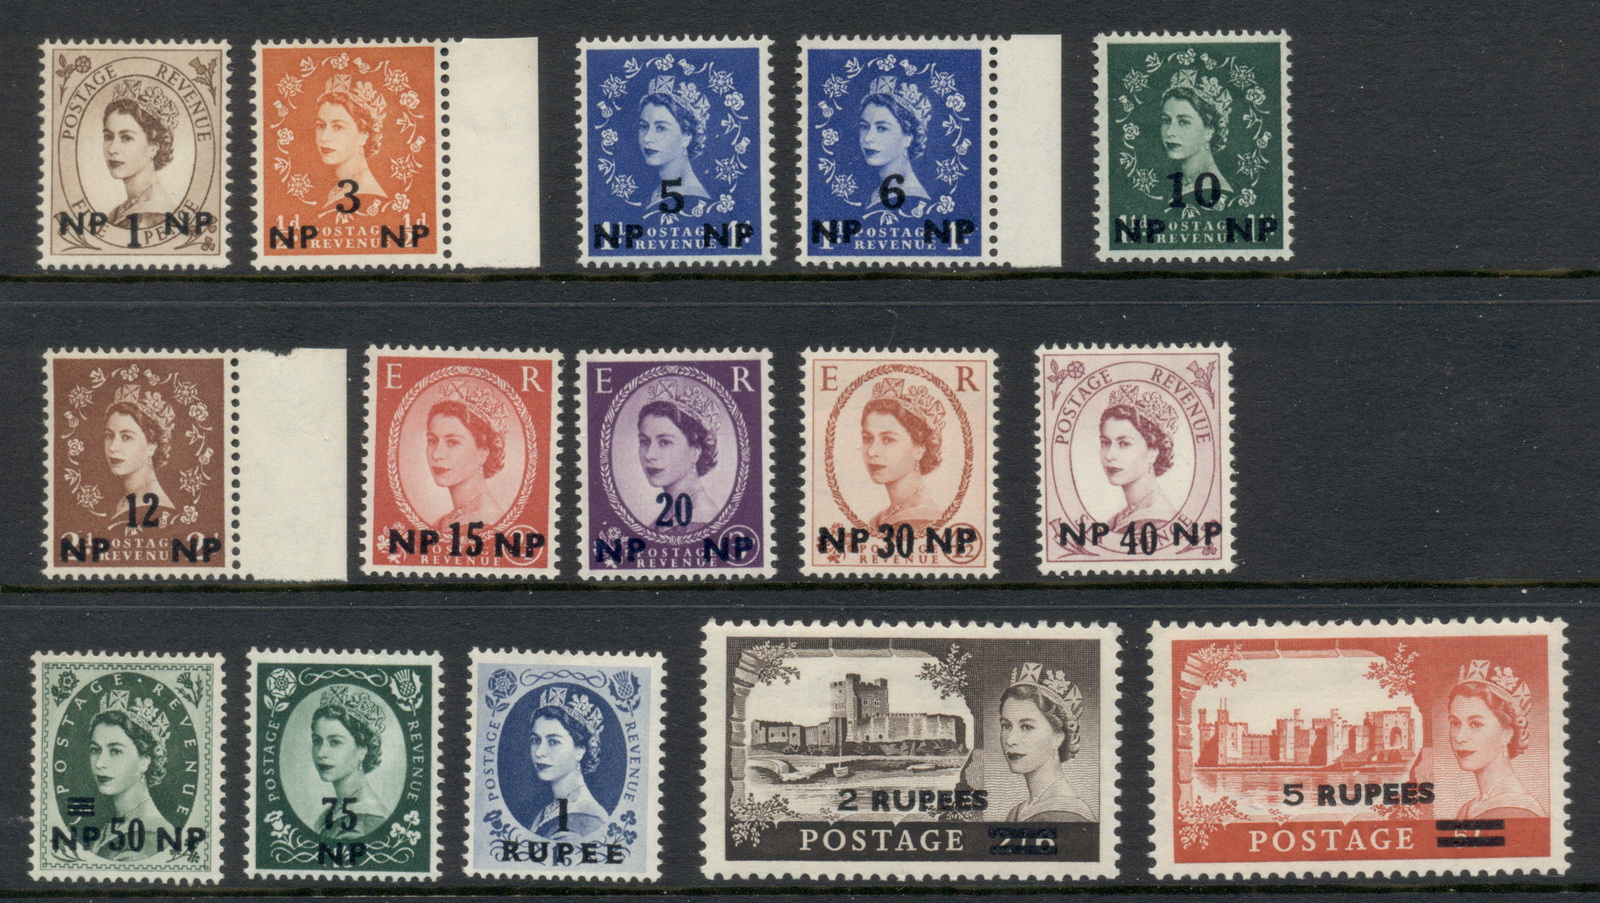 Muscat & Oman 1960-61 QEII Wildings & Castles Opts on GB MUH